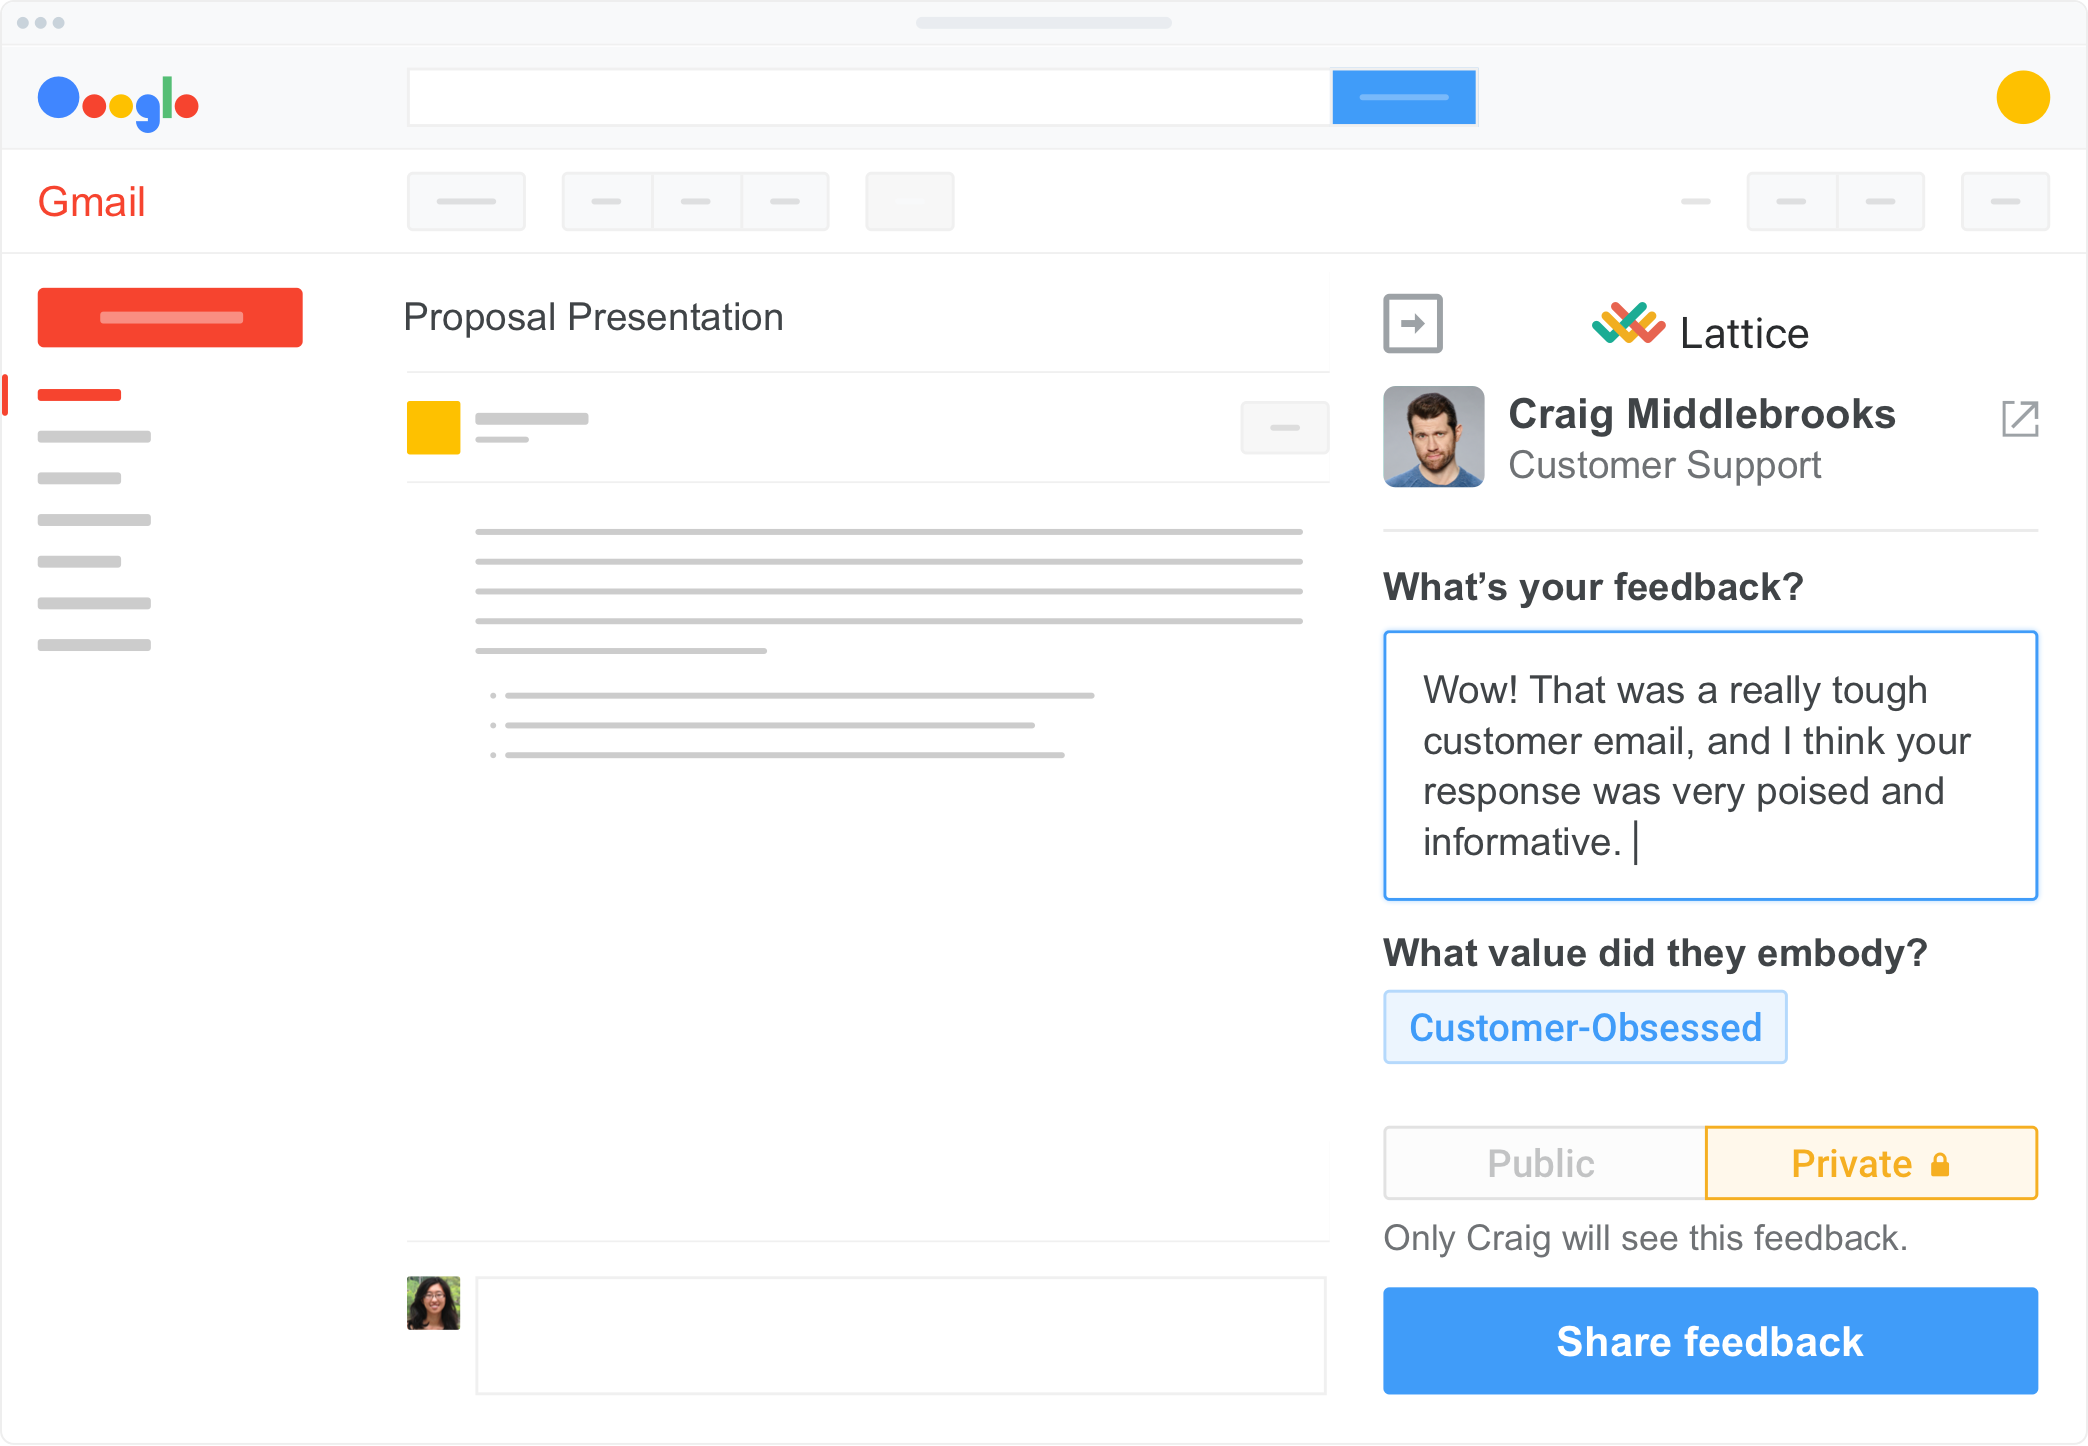 Share feedback from Gmail and Outlook